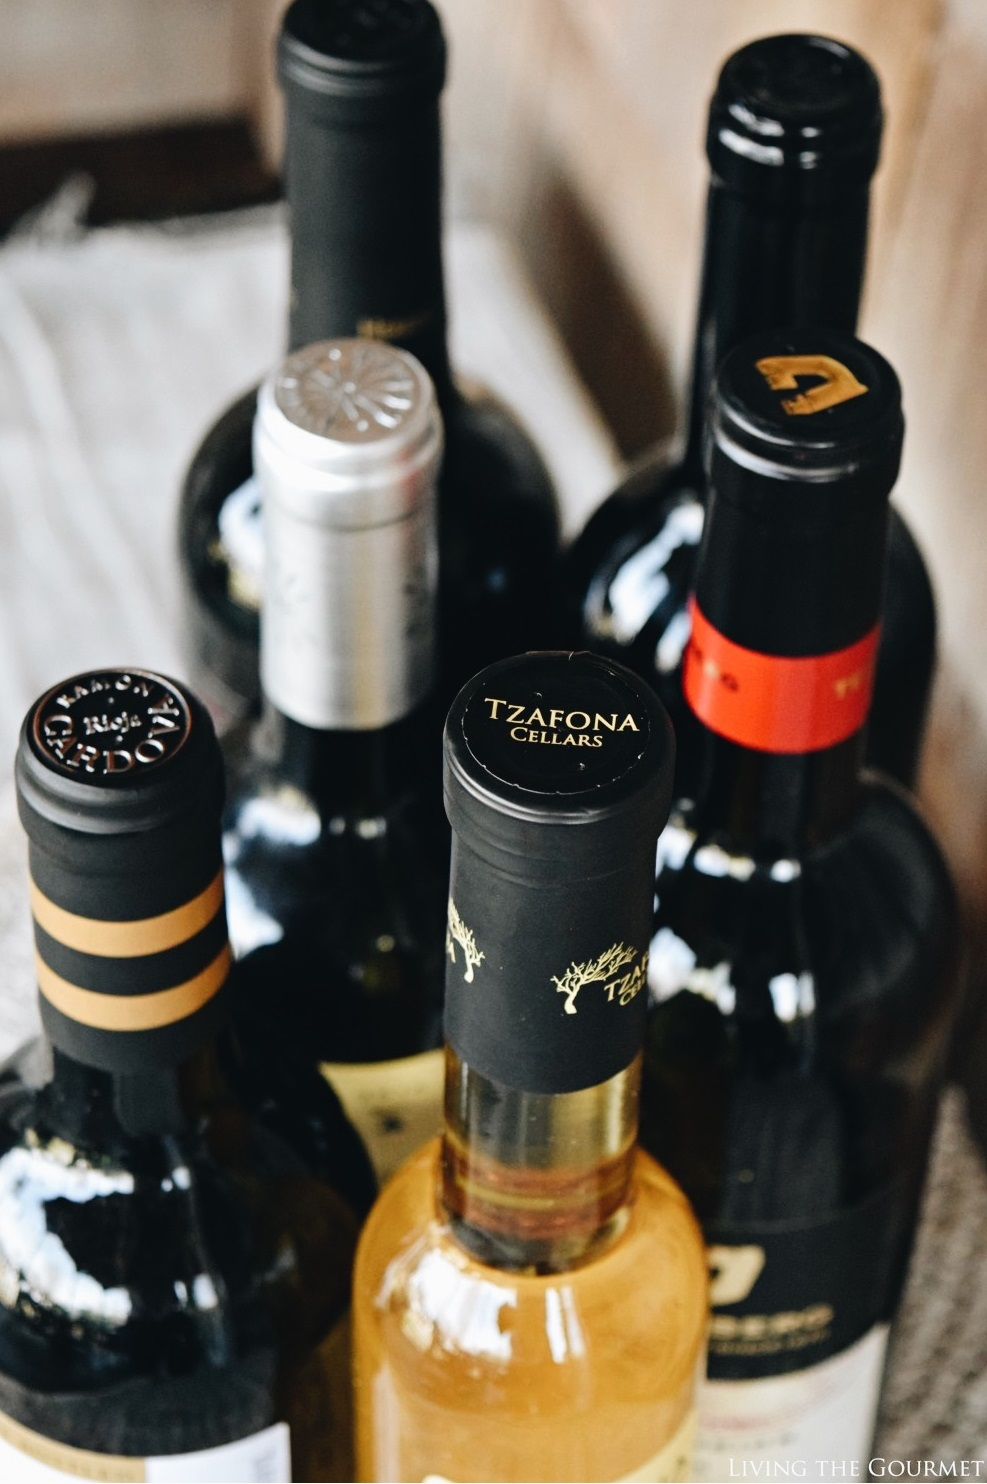 Living the Gourmet: Passover Wine Selections from Royal Wine Corp.